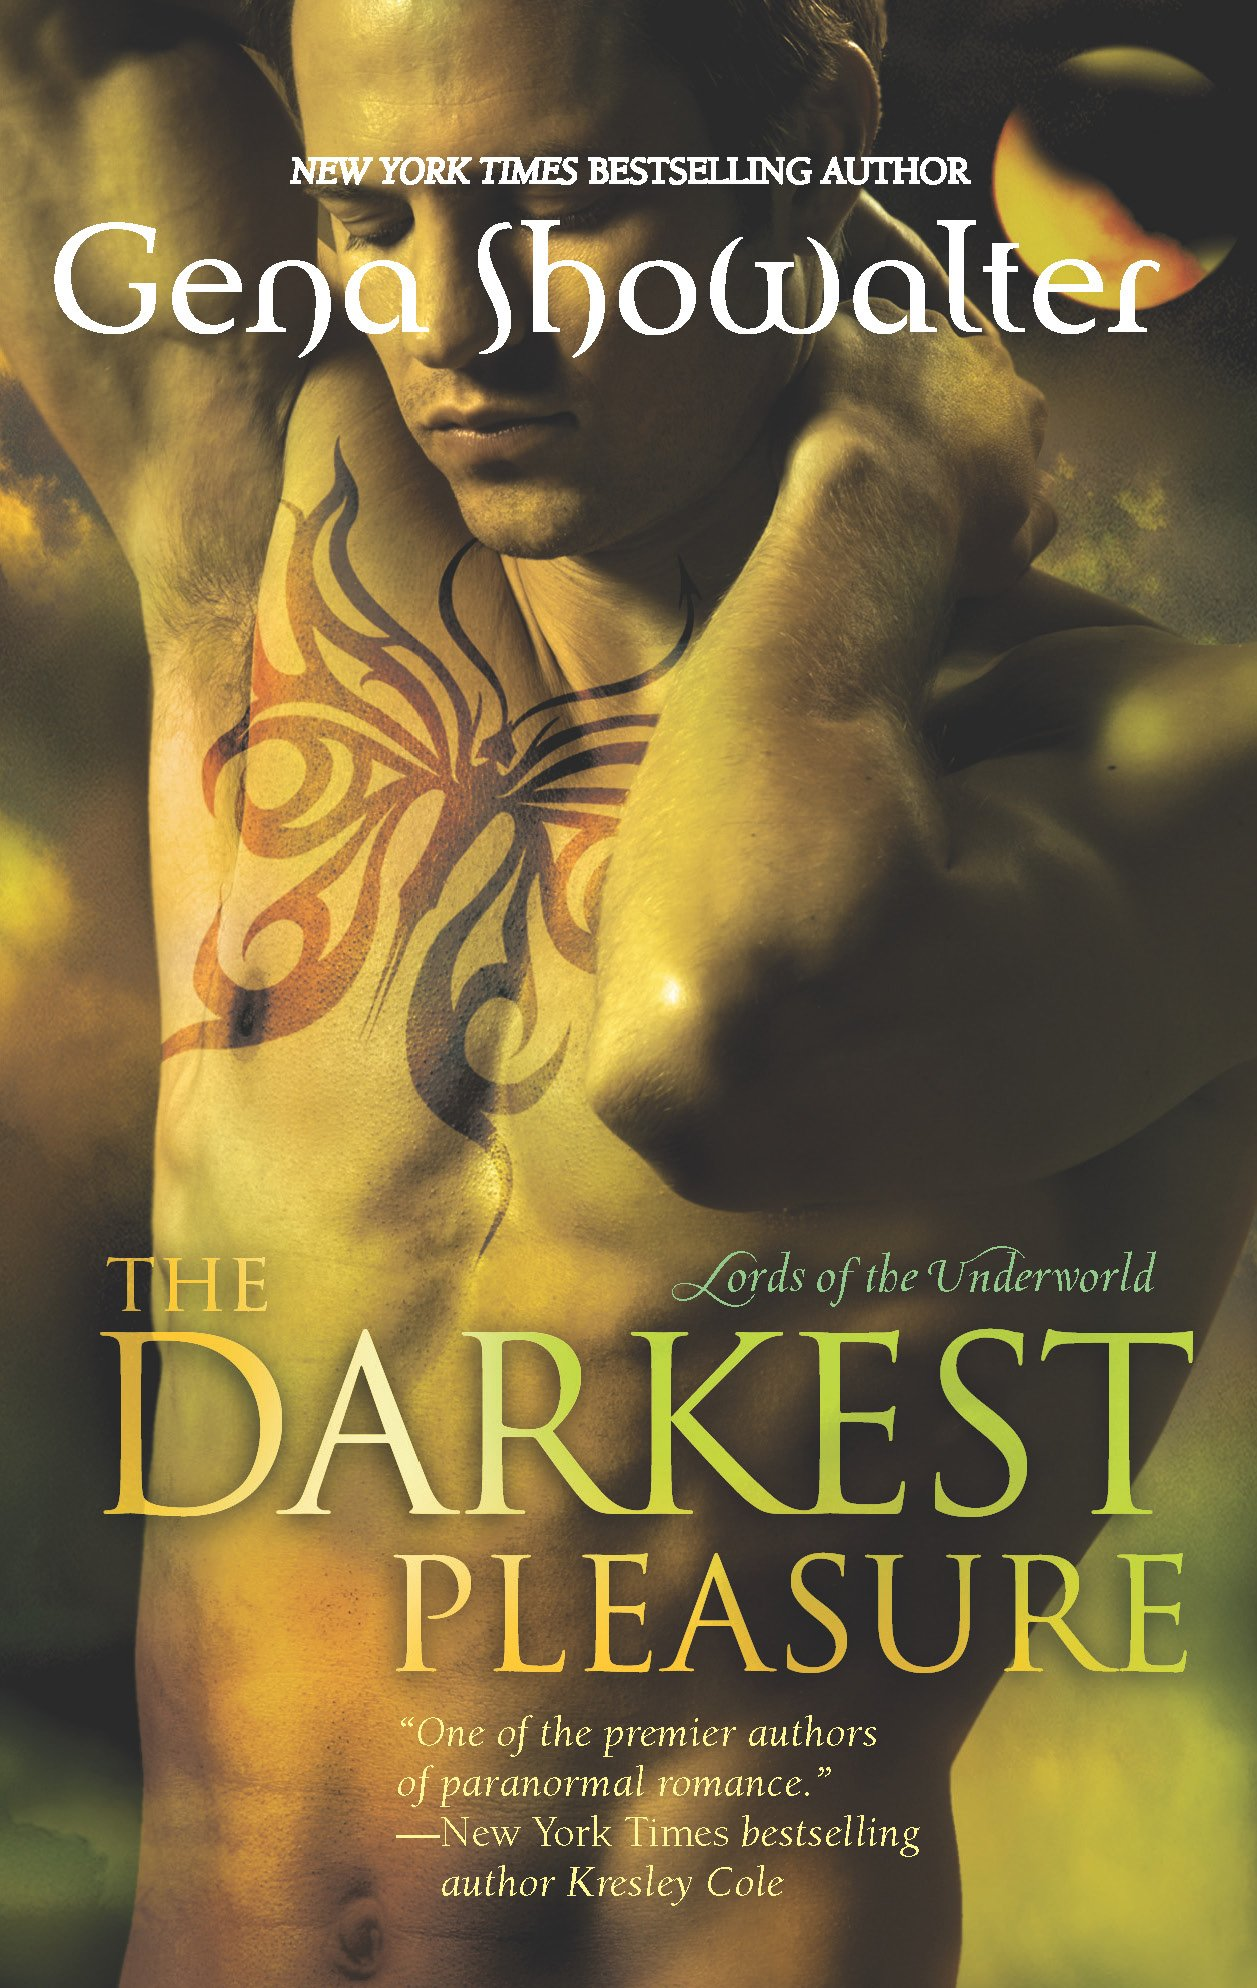 Buy The Darkest Pleasure (Lords of the Underworld) Book Online at Low  Prices in India | The Darkest Pleasure (Lords of the Underworld) Reviews &  Ratings ...